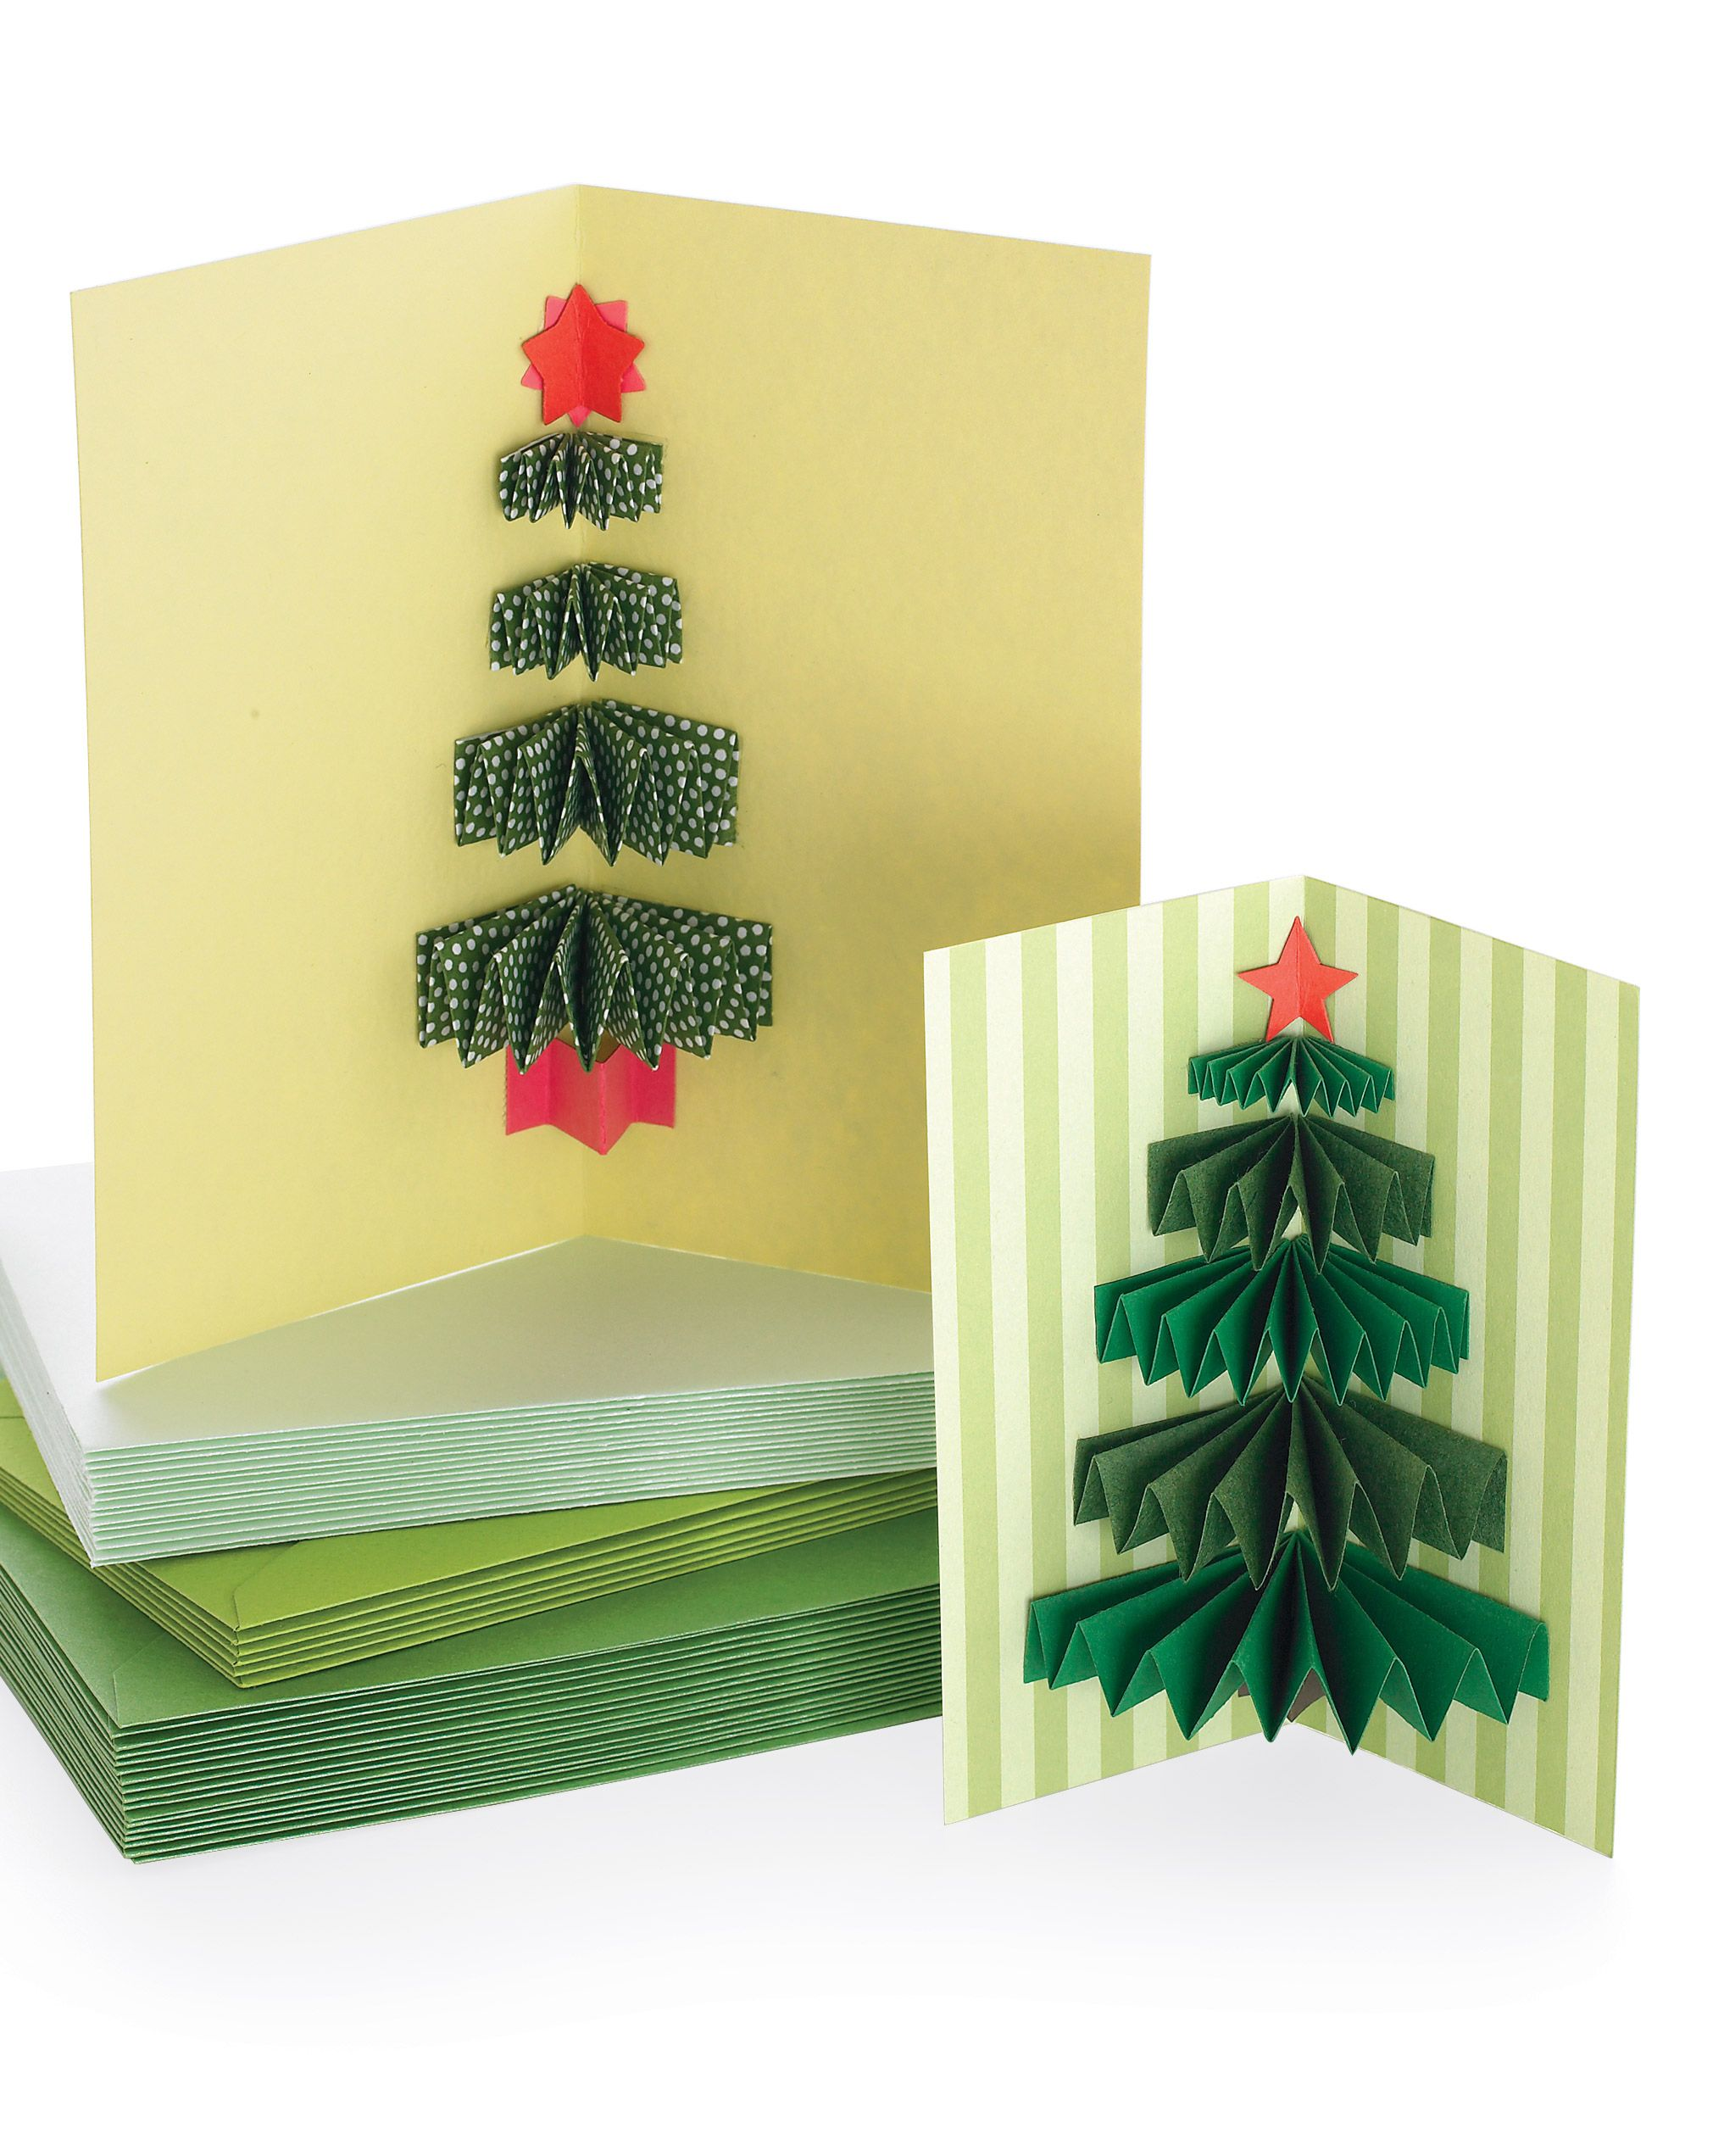 3 D Christmas Tree Card Tutorial Diy Christmas Cards Christmas Tree Cards Christmas Diy